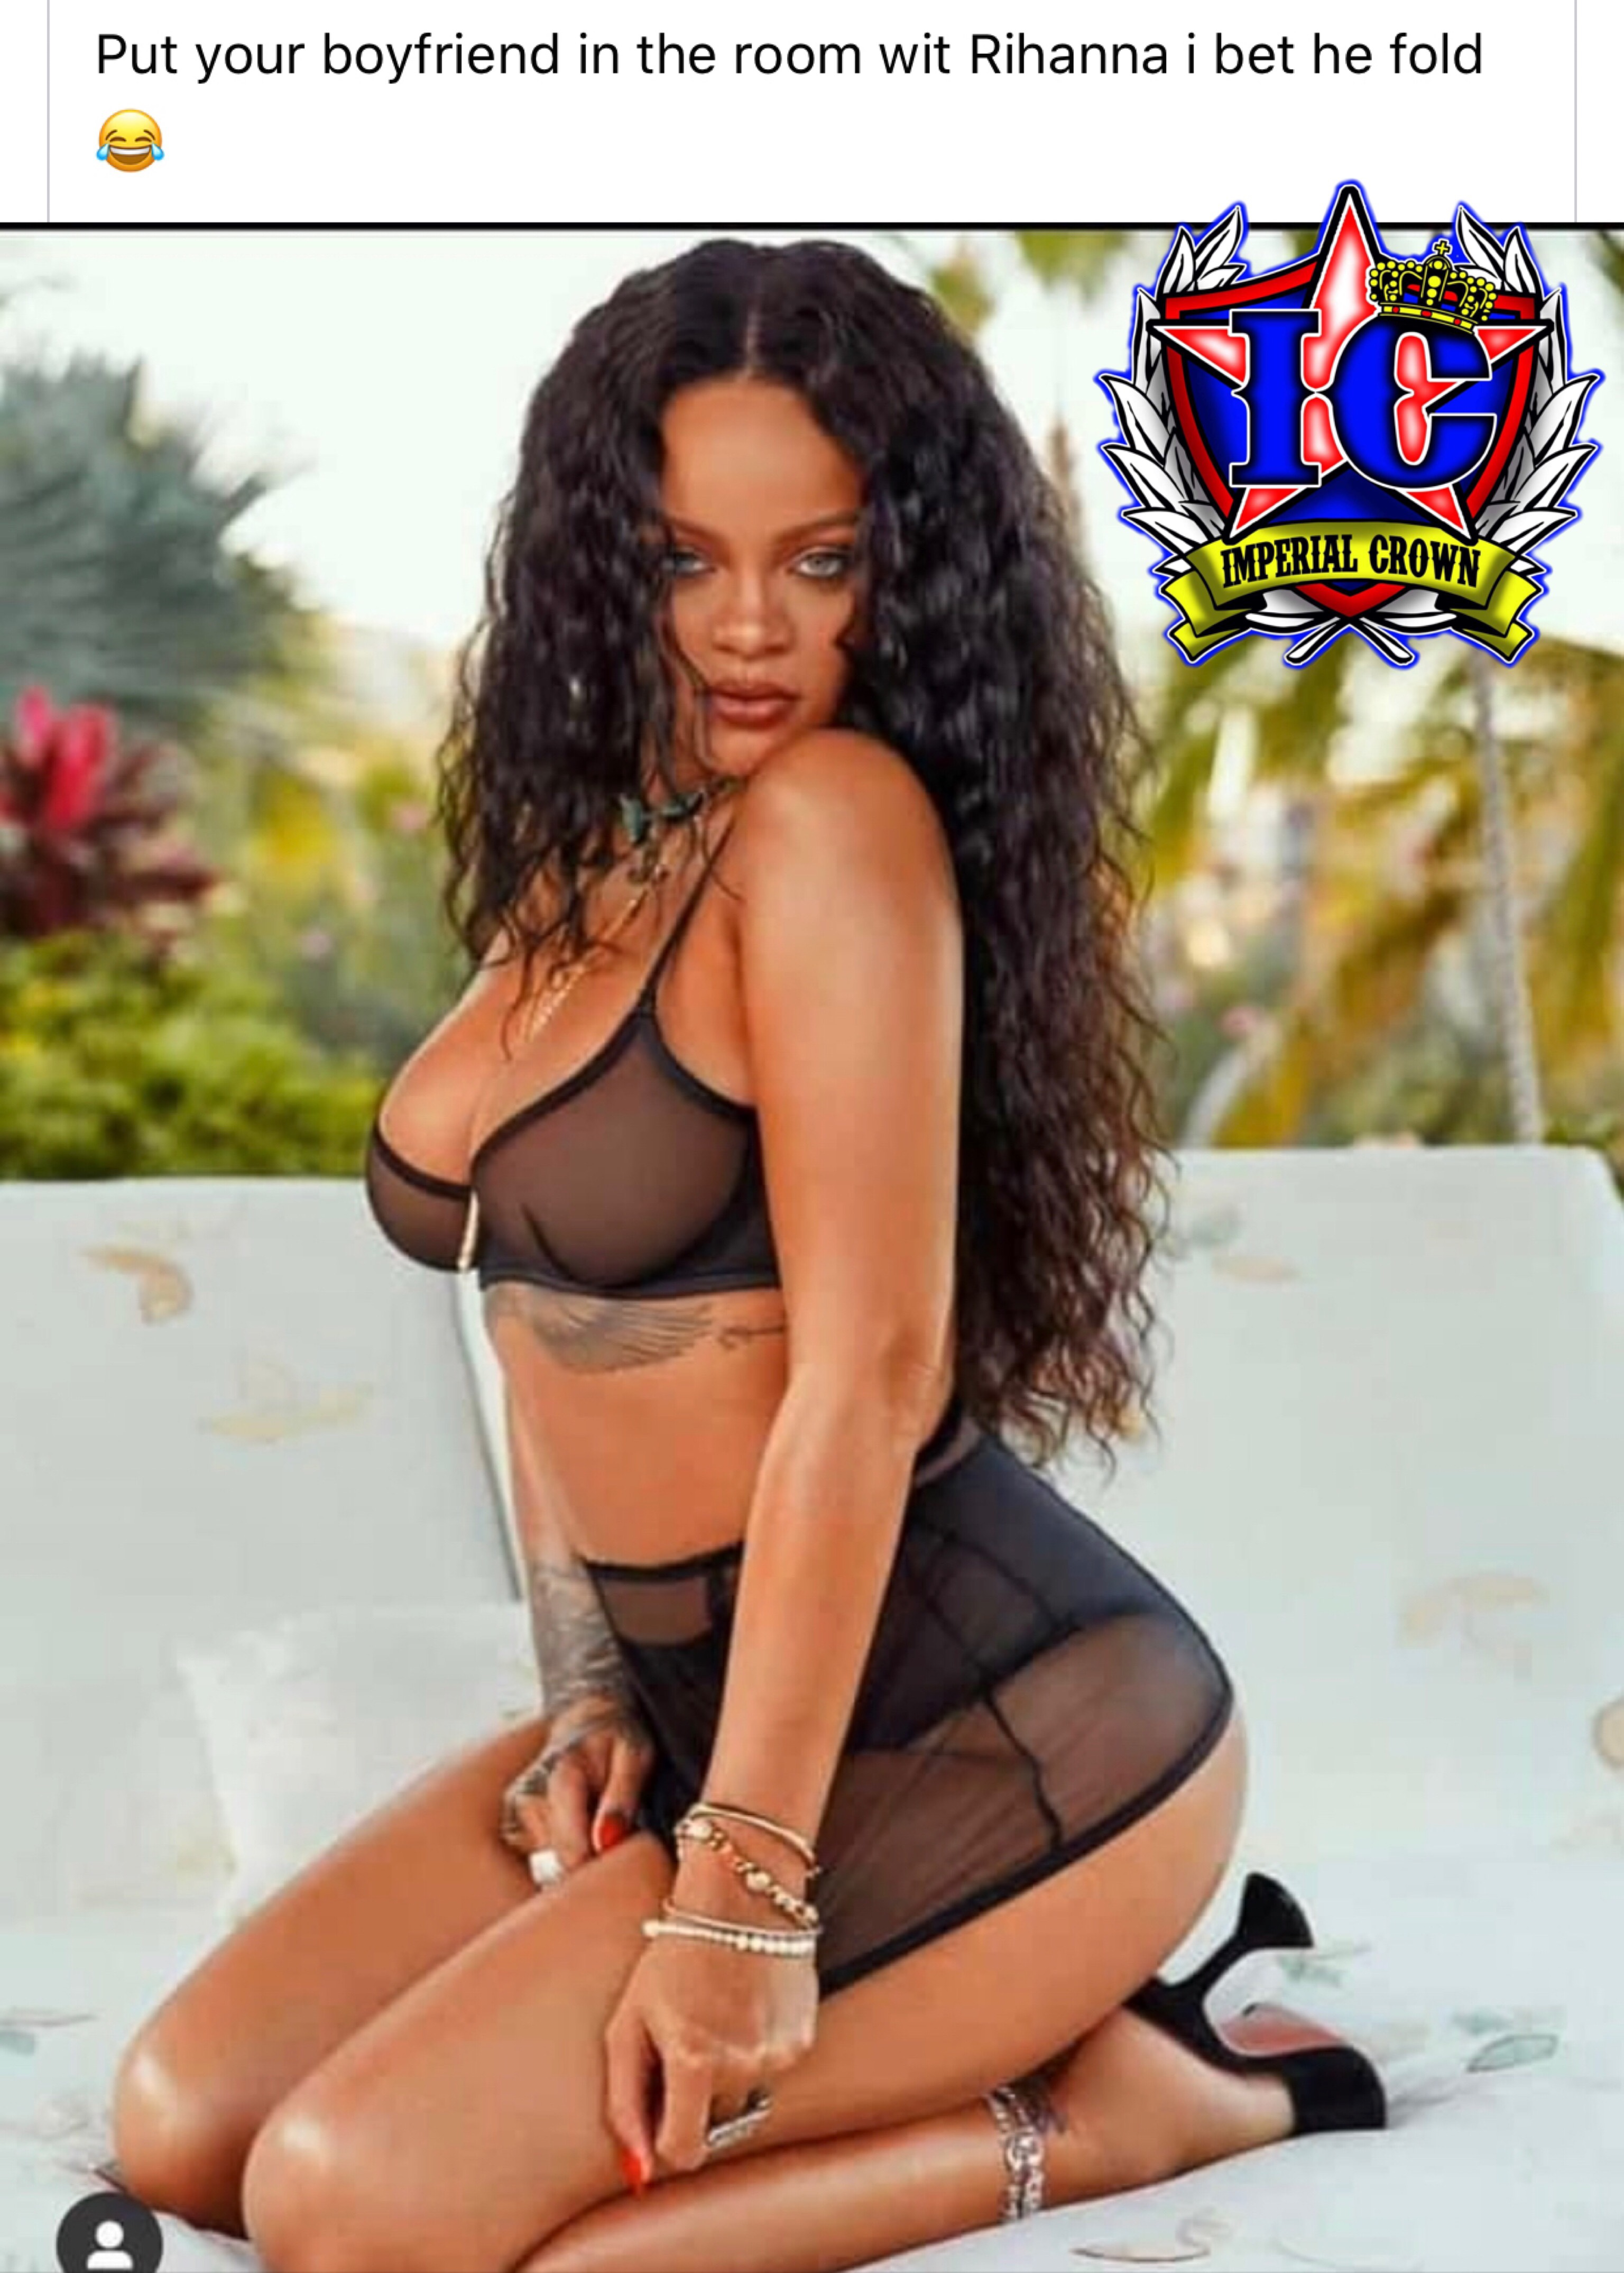 Put your boyfriend in the room wit Rihanna I bet he fold